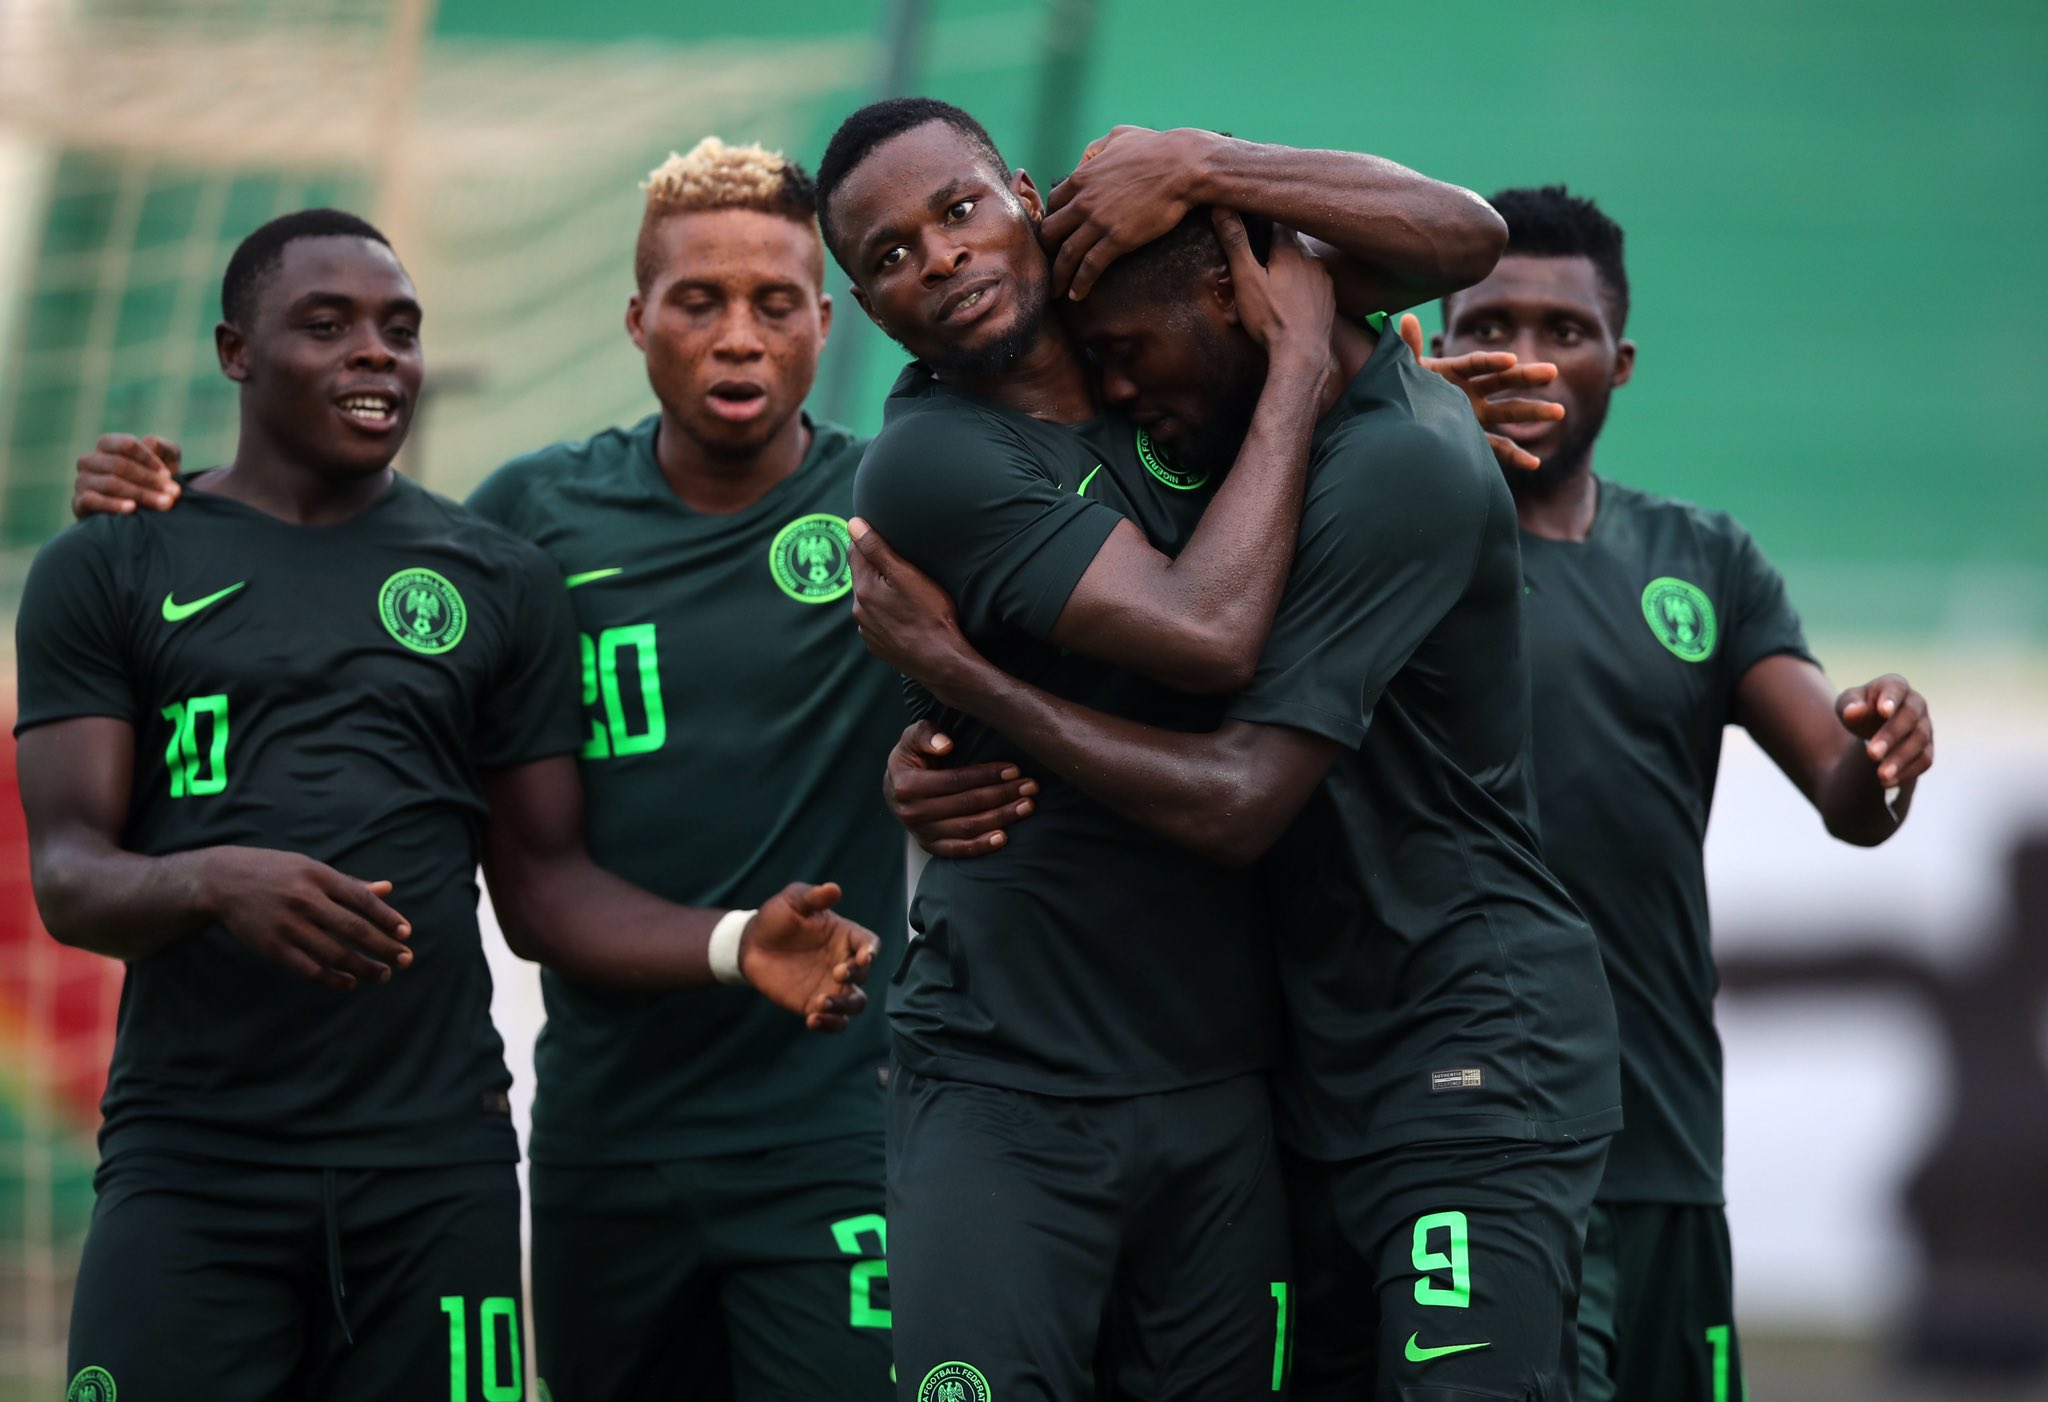 CHAN 2020 Qualifier: Home-Eagles To Face Togo In Agege As Imama Beefs Up Team With New Players